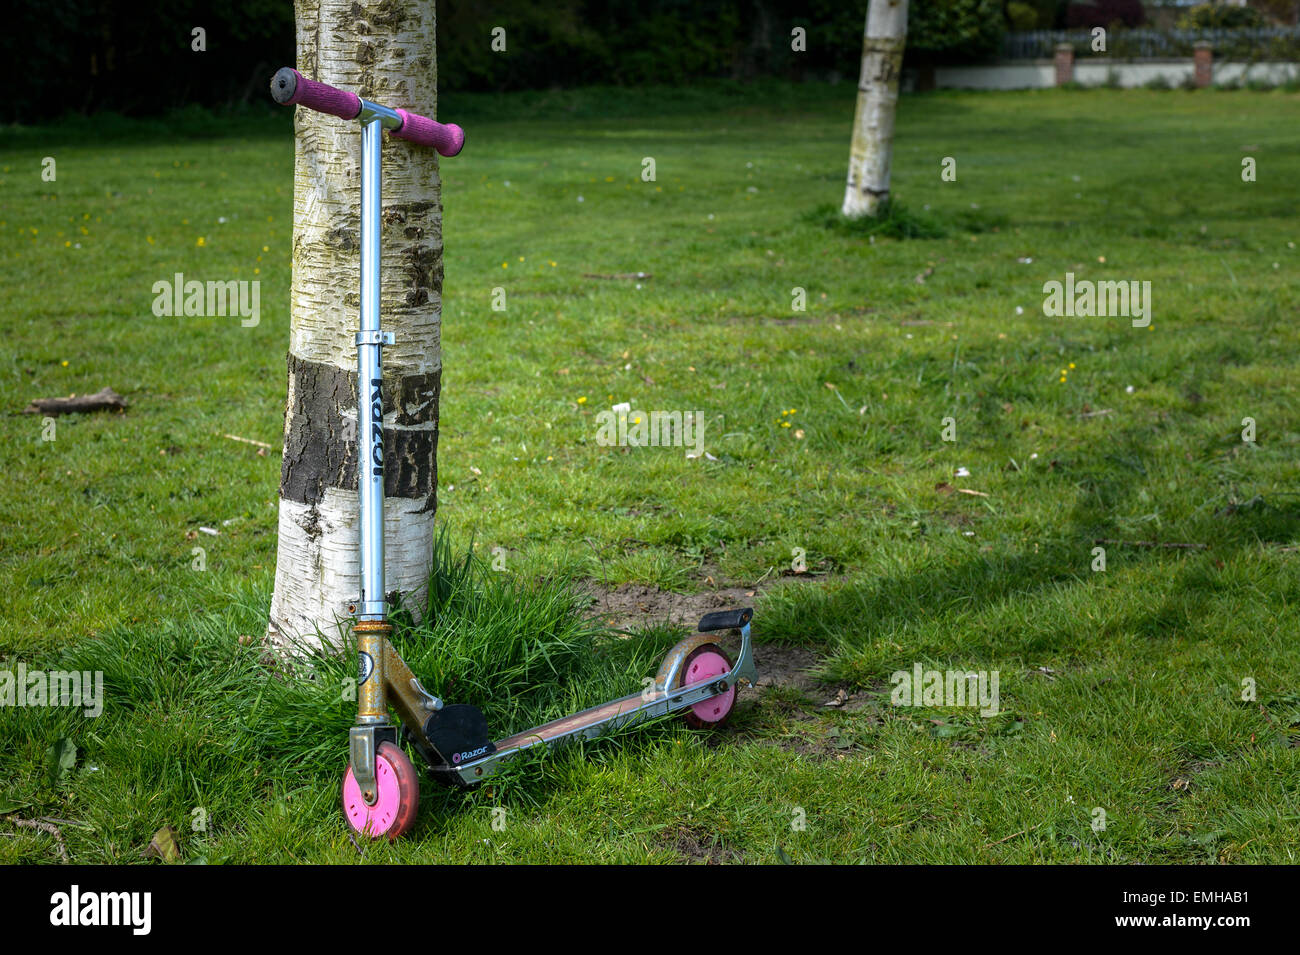 Abandoned child's scooter (Razor brand - 'Kick Scooter') leaning against a tree. Missing child concept. - Stock Image